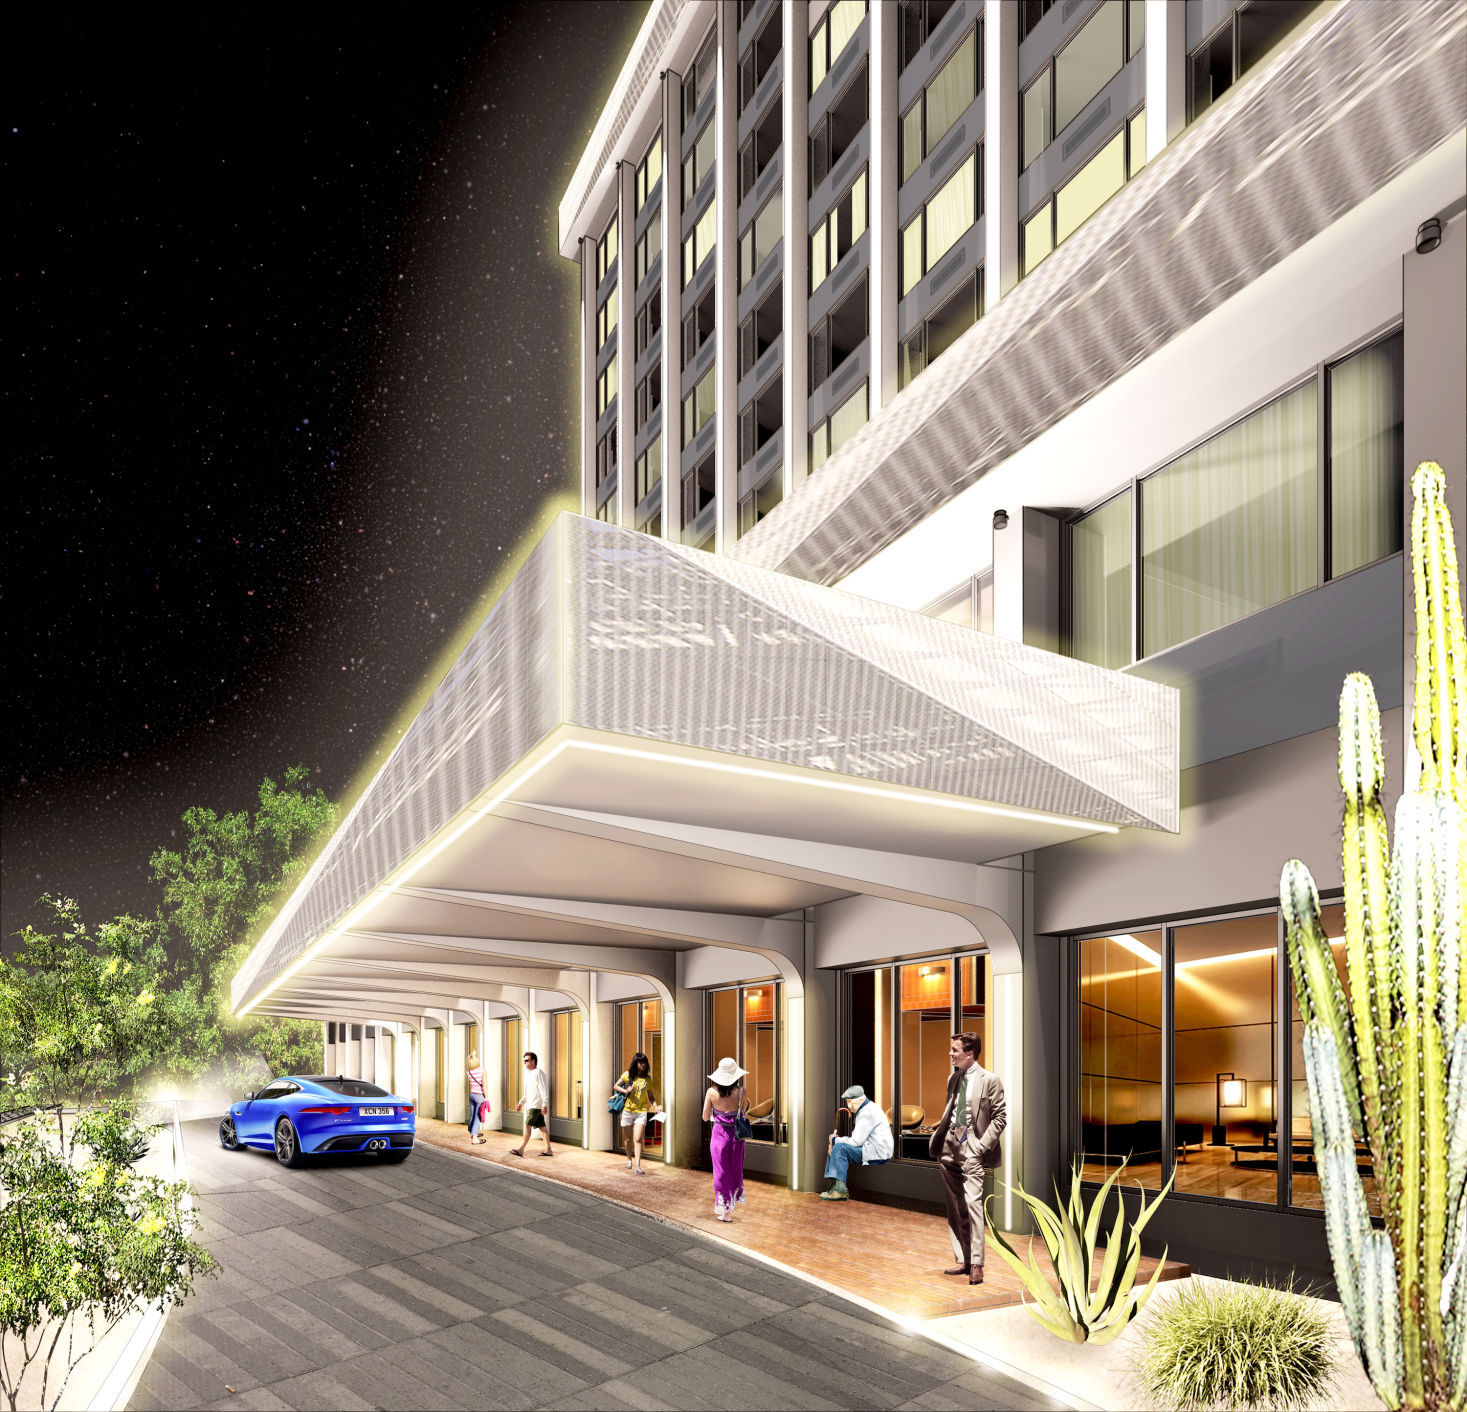 downtown tucson s former hotel arizona could reopen by 2019 rh tucson com